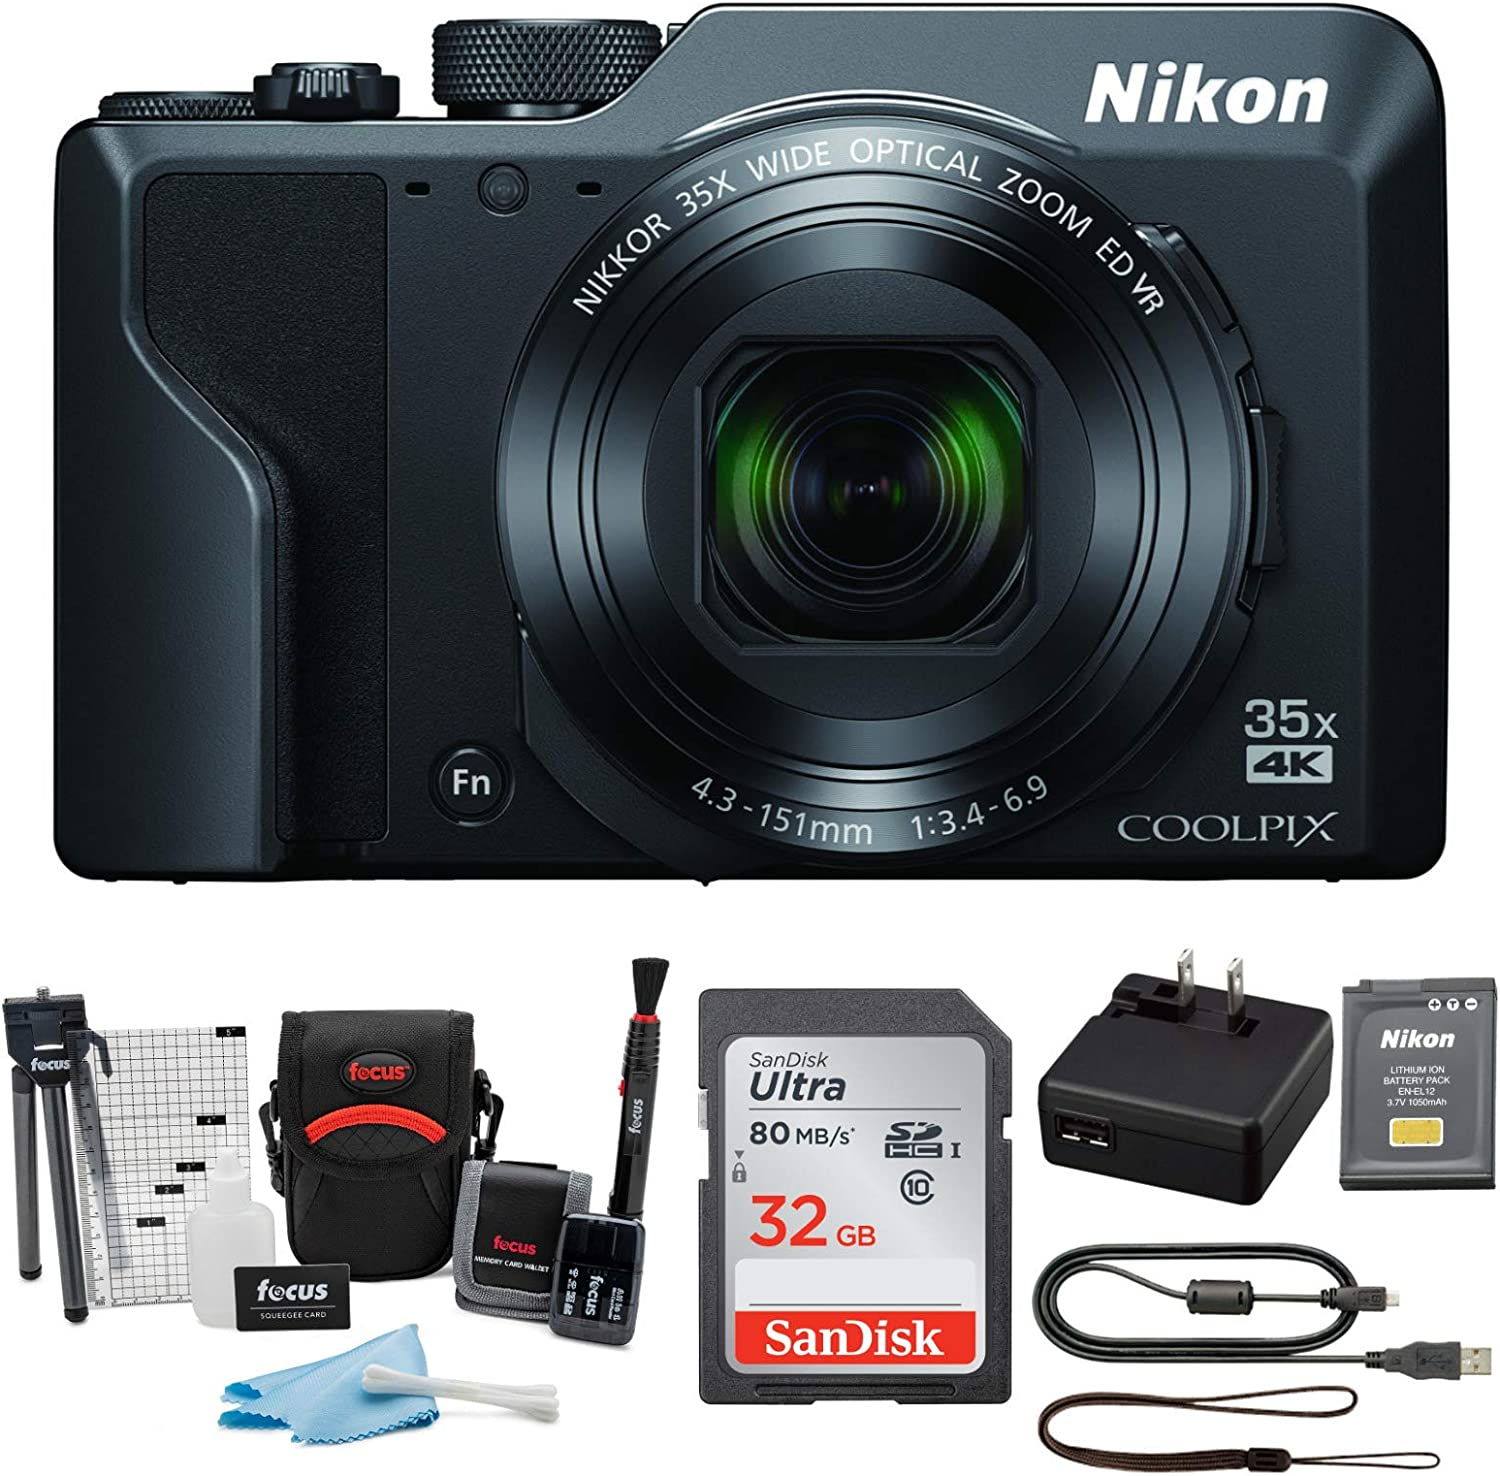 Nikon COOLPIX A1000 Compact Digital Camera 4K Video with 32GB Card and Accessory Bundle (3 Items)